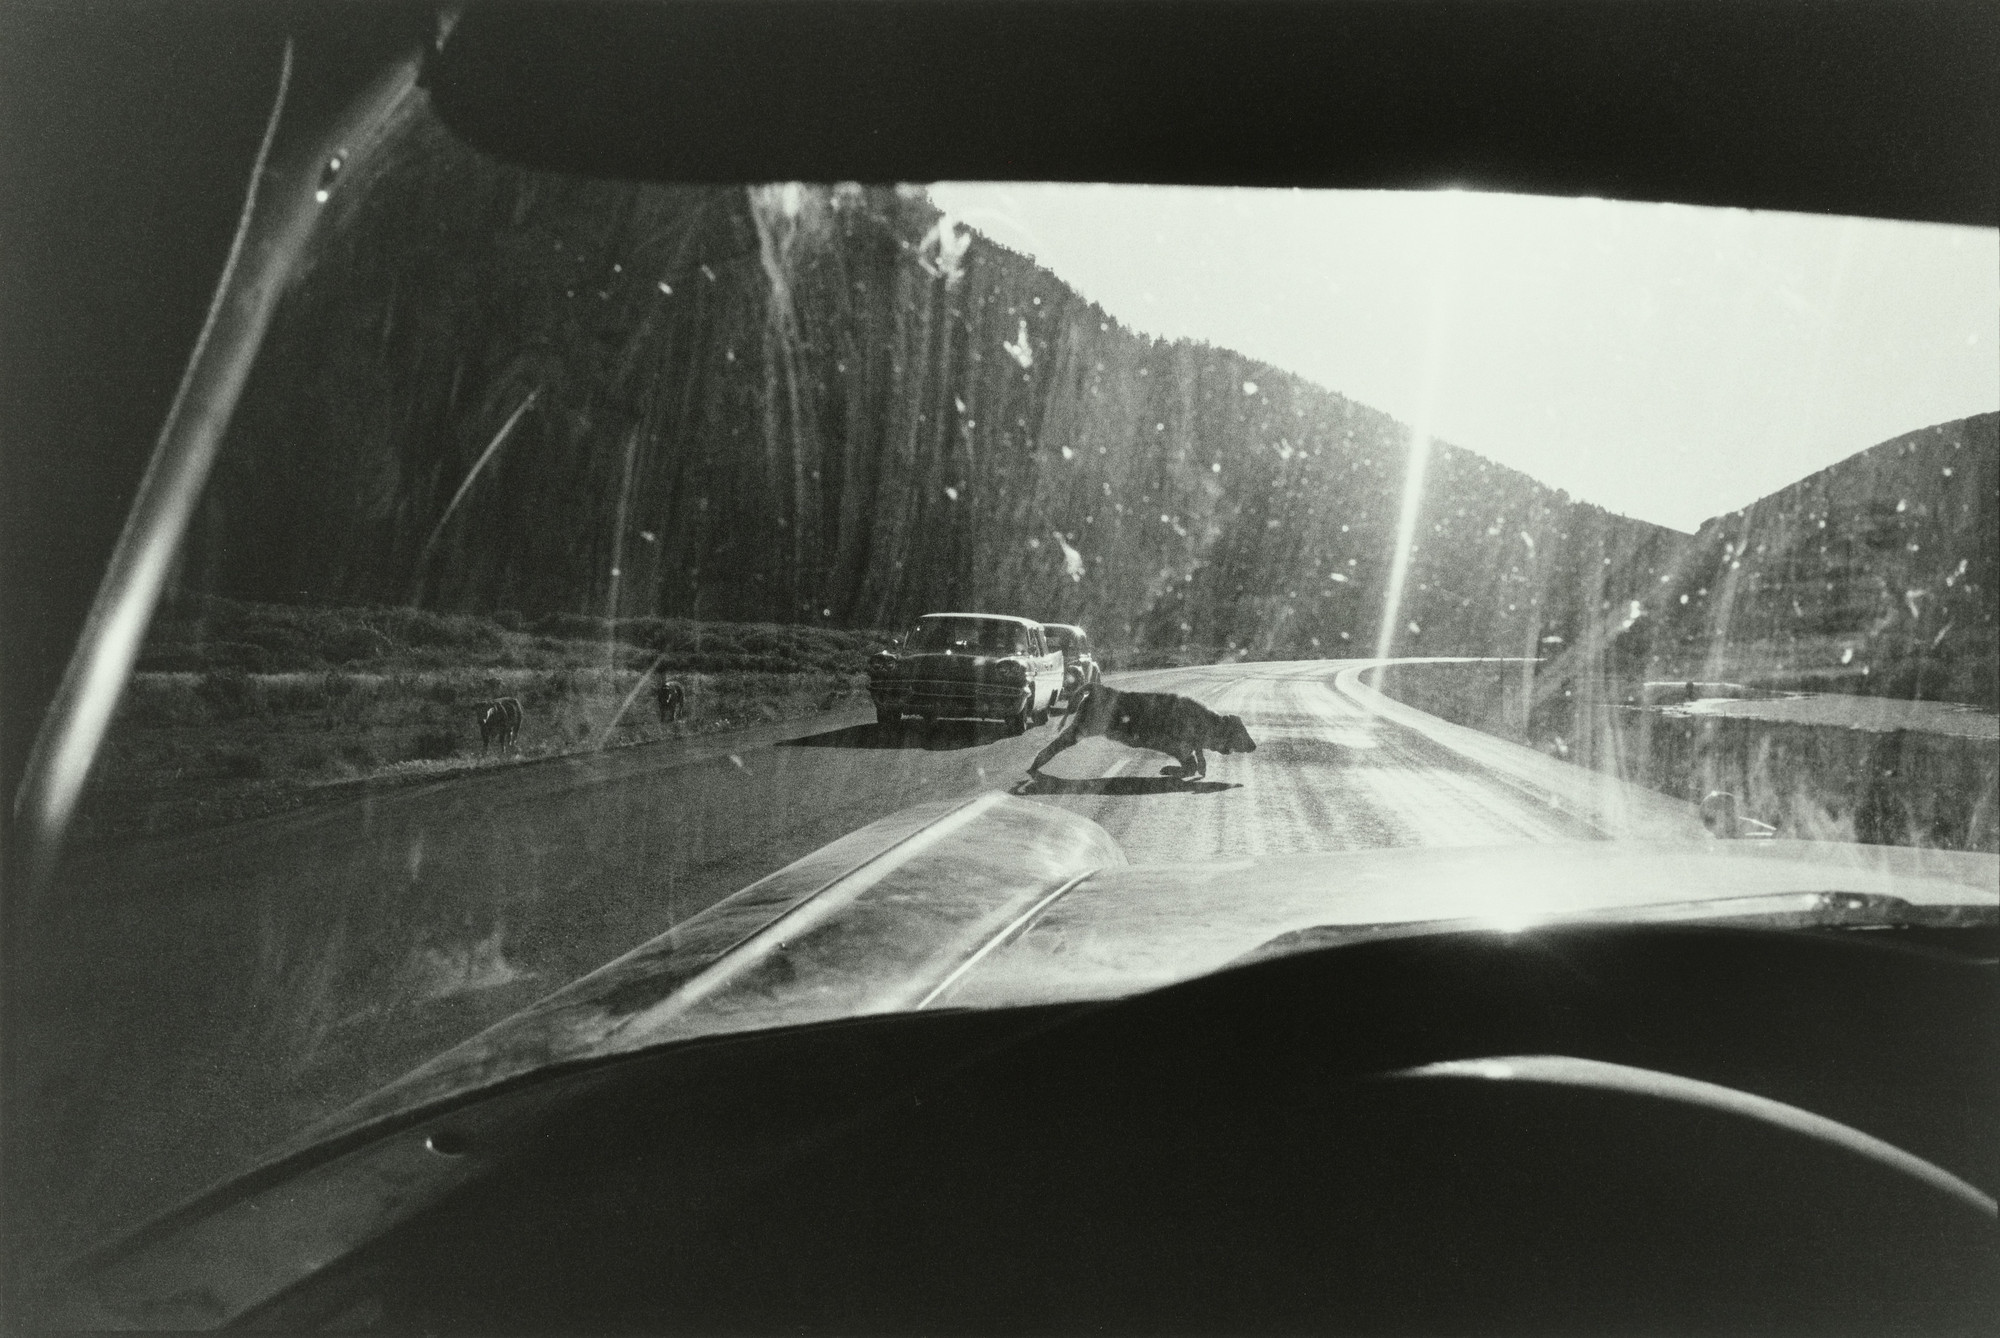 Garry Winogrand. Wyoming. 1964